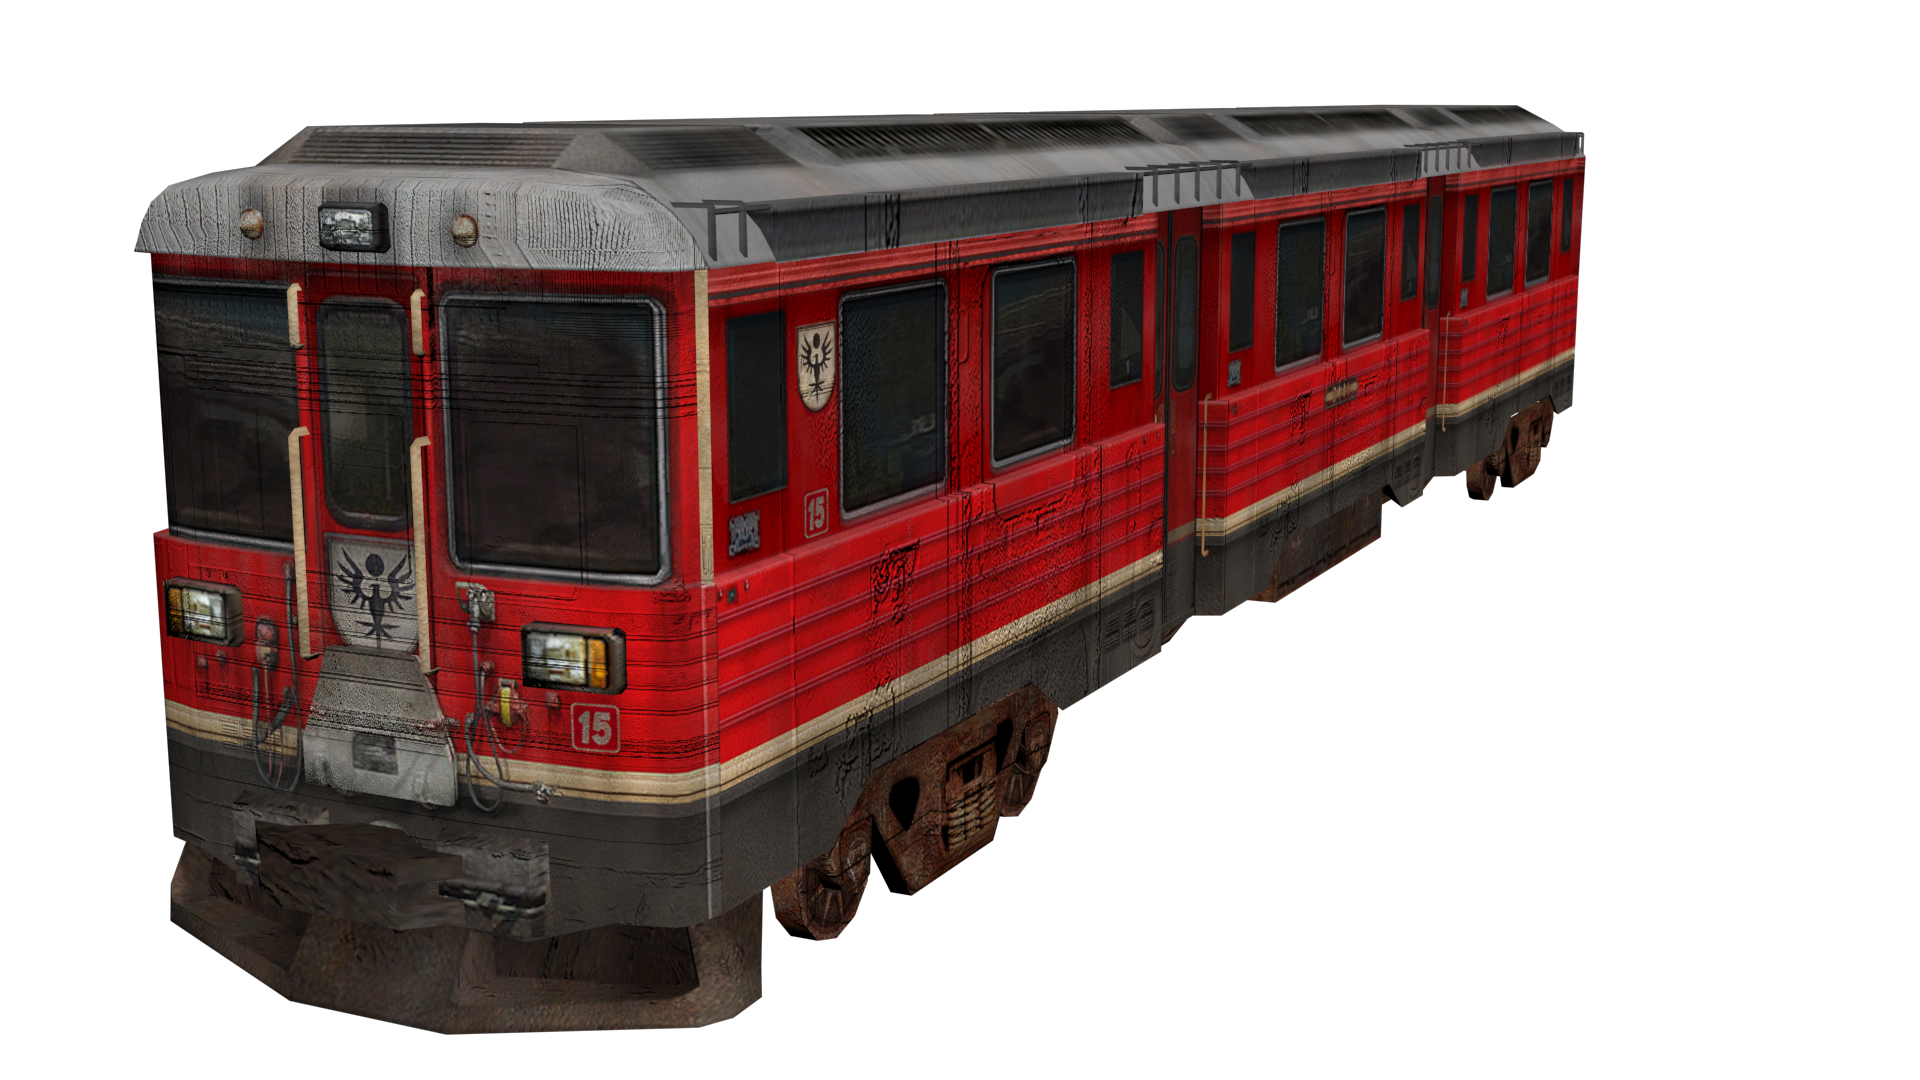 Train Transparent Background Picture